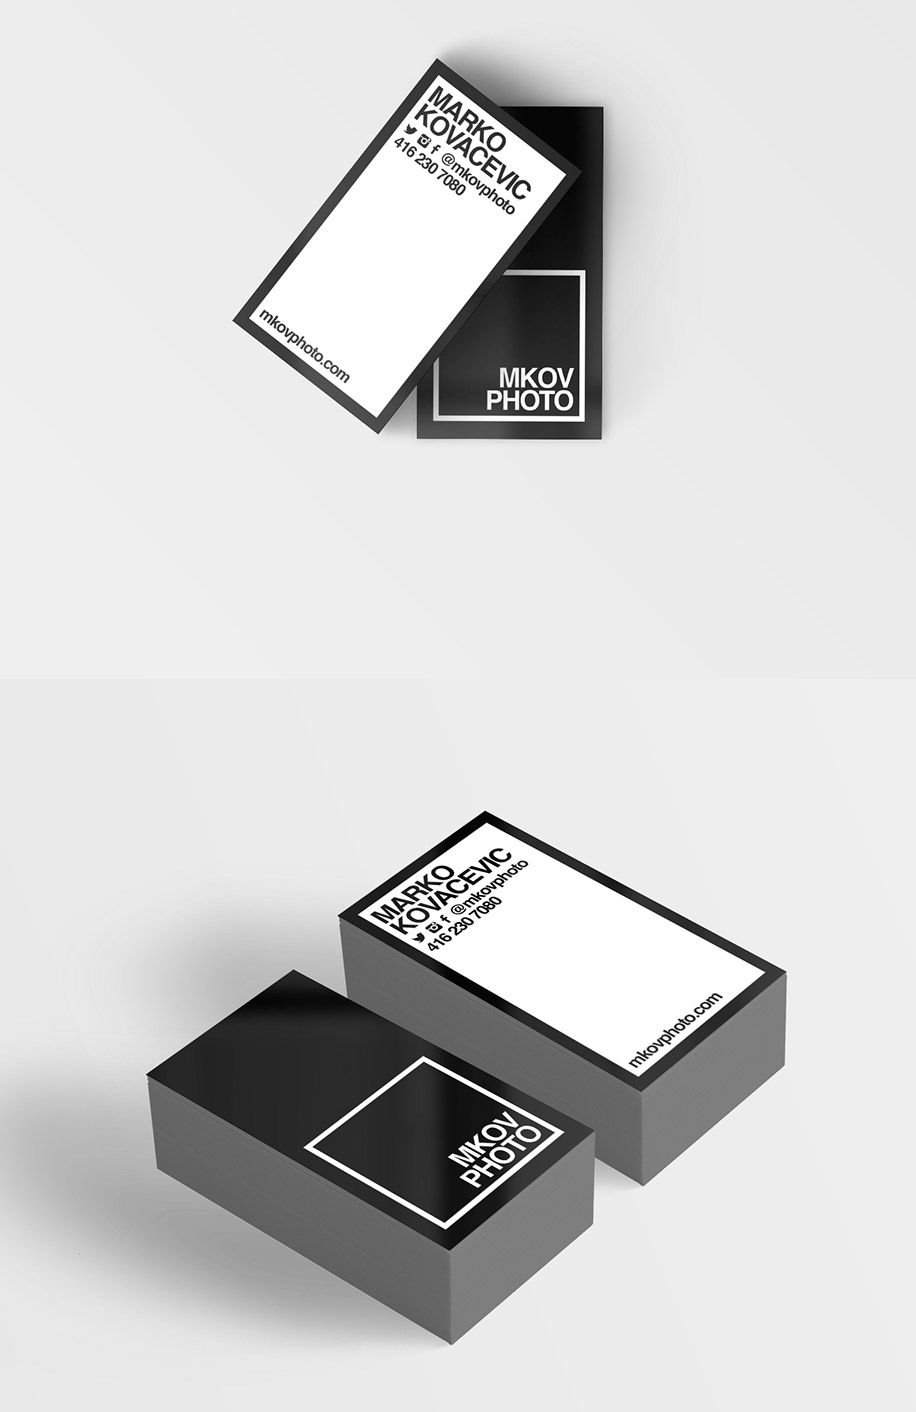 20 minimalistic business card designs for you to see business 20 minimalistic business card designs for you to see magicingreecefo Images